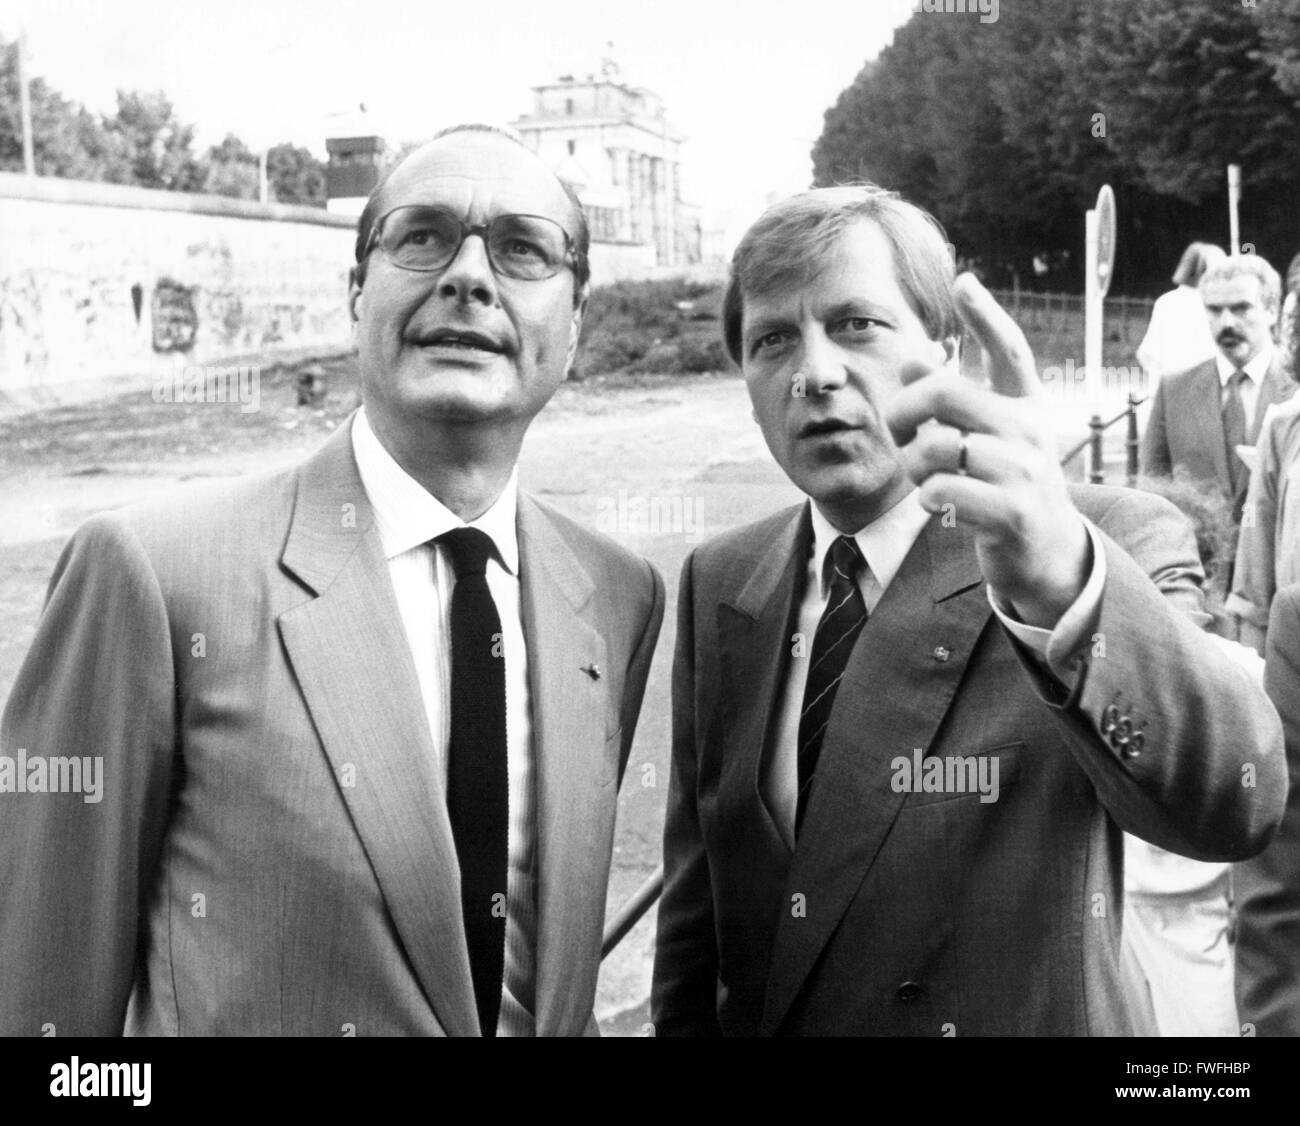 French prime minister Jacques Chirac (l) and Berlin mayor Eberhard Diepgen visiting the Berlin wall on 1 July 1987. - Stock Image